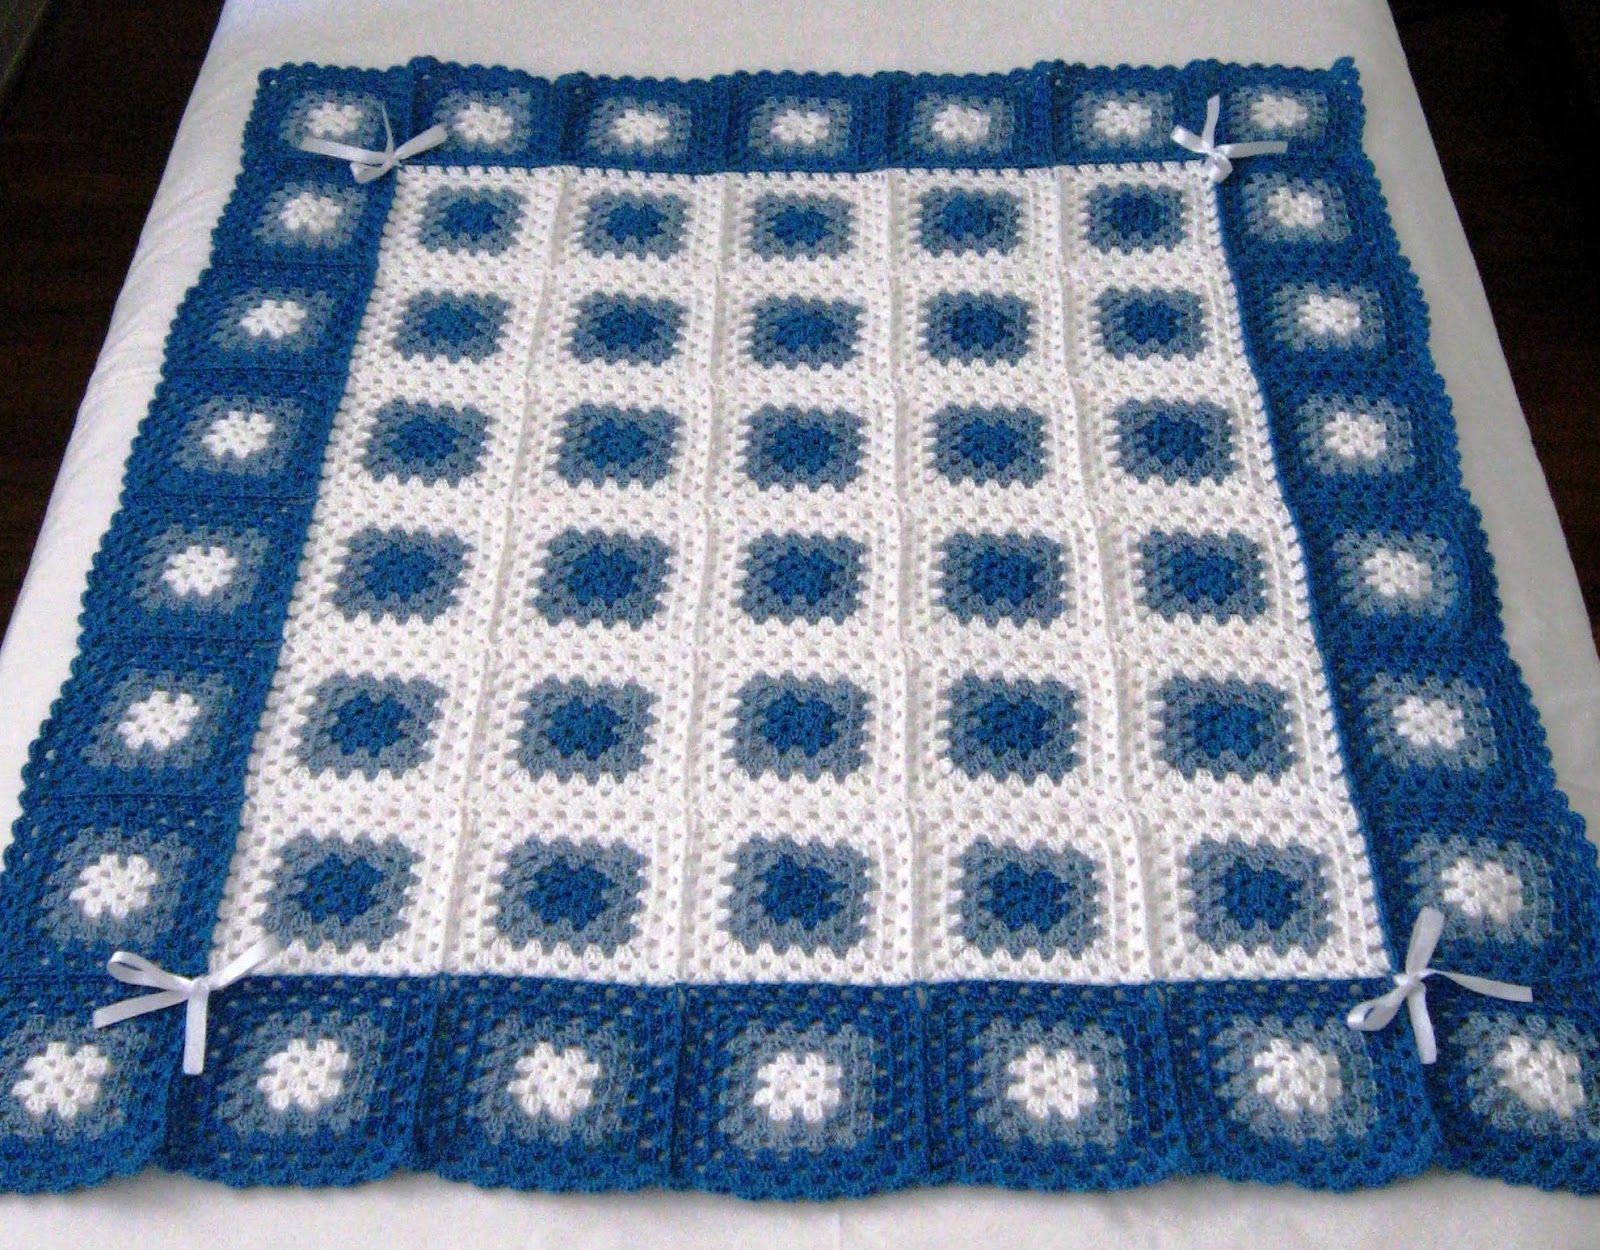 Baby boy granny square crochet blanket google search crochet love crochet granny square quilt hand crochet baby boy blanket no pattern inspiration only bankloansurffo Choice Image